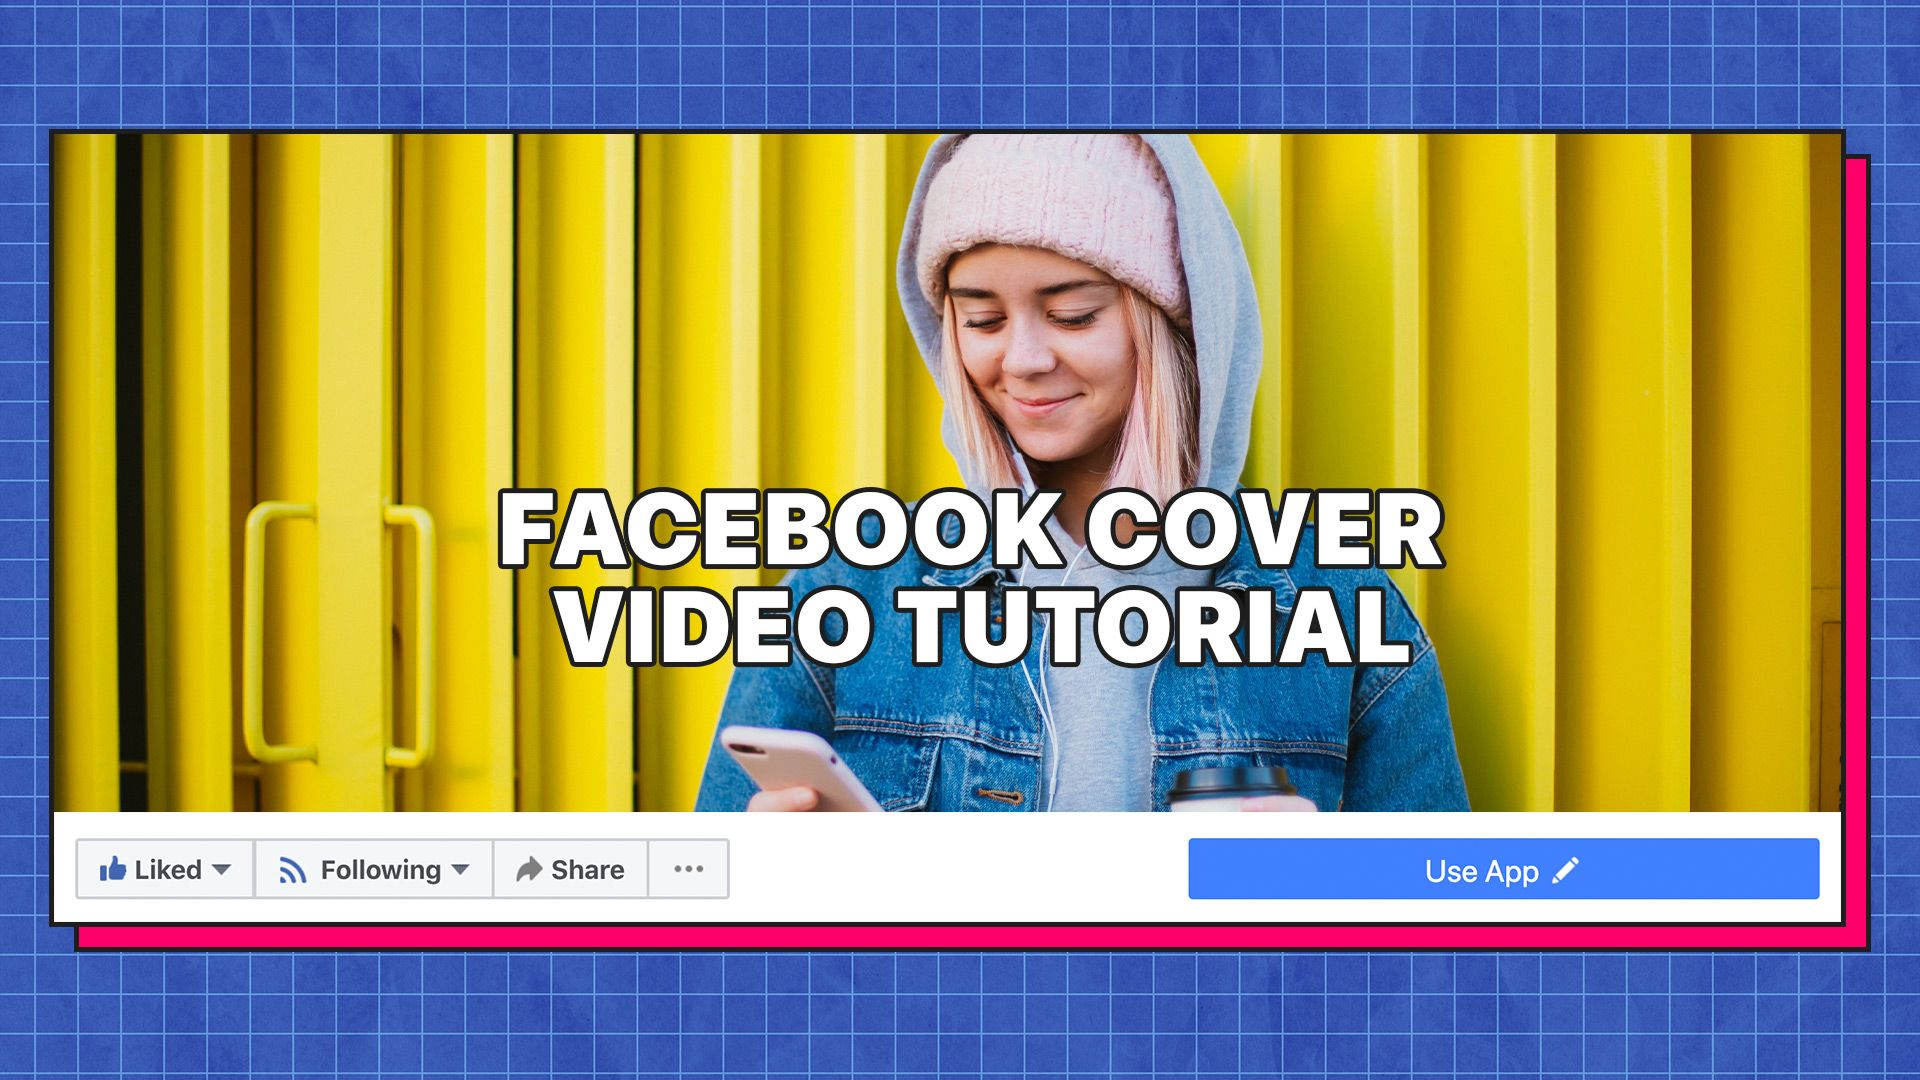 Make a Professional Facebook Cover Video In Just Minutes